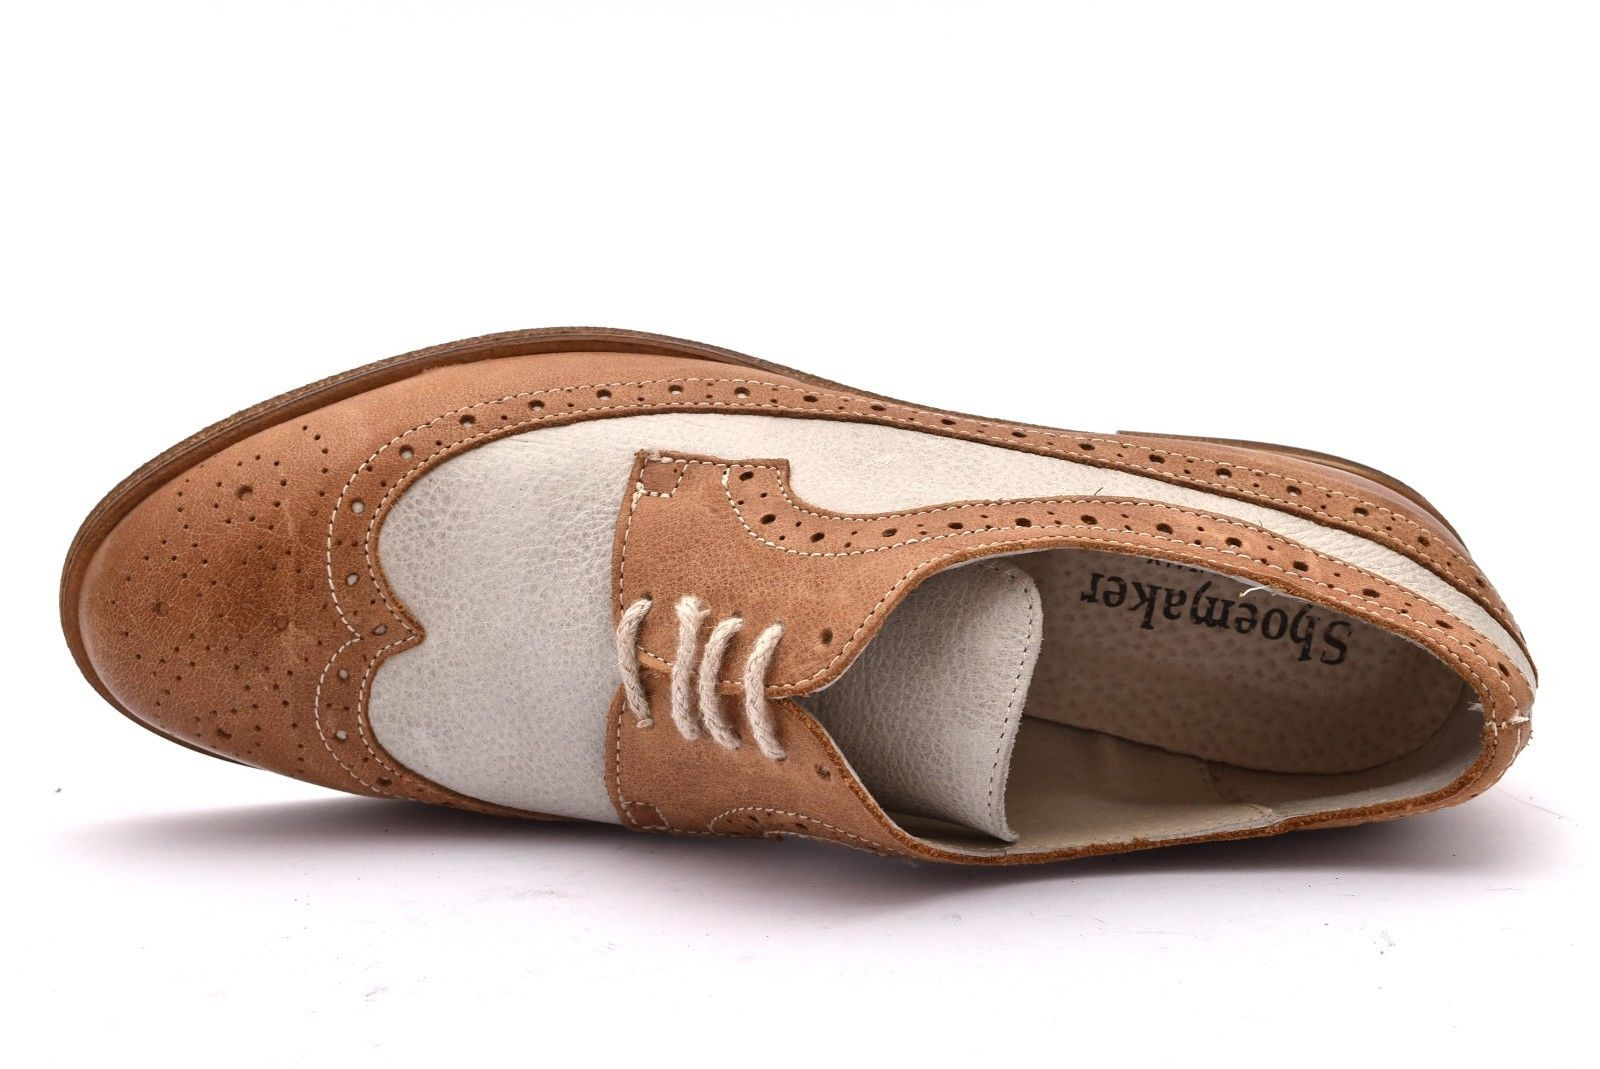 new style 194b8 a43e0 SHOEMAKER 1306 CUOIO BIANCO | shoesmyfriends.it